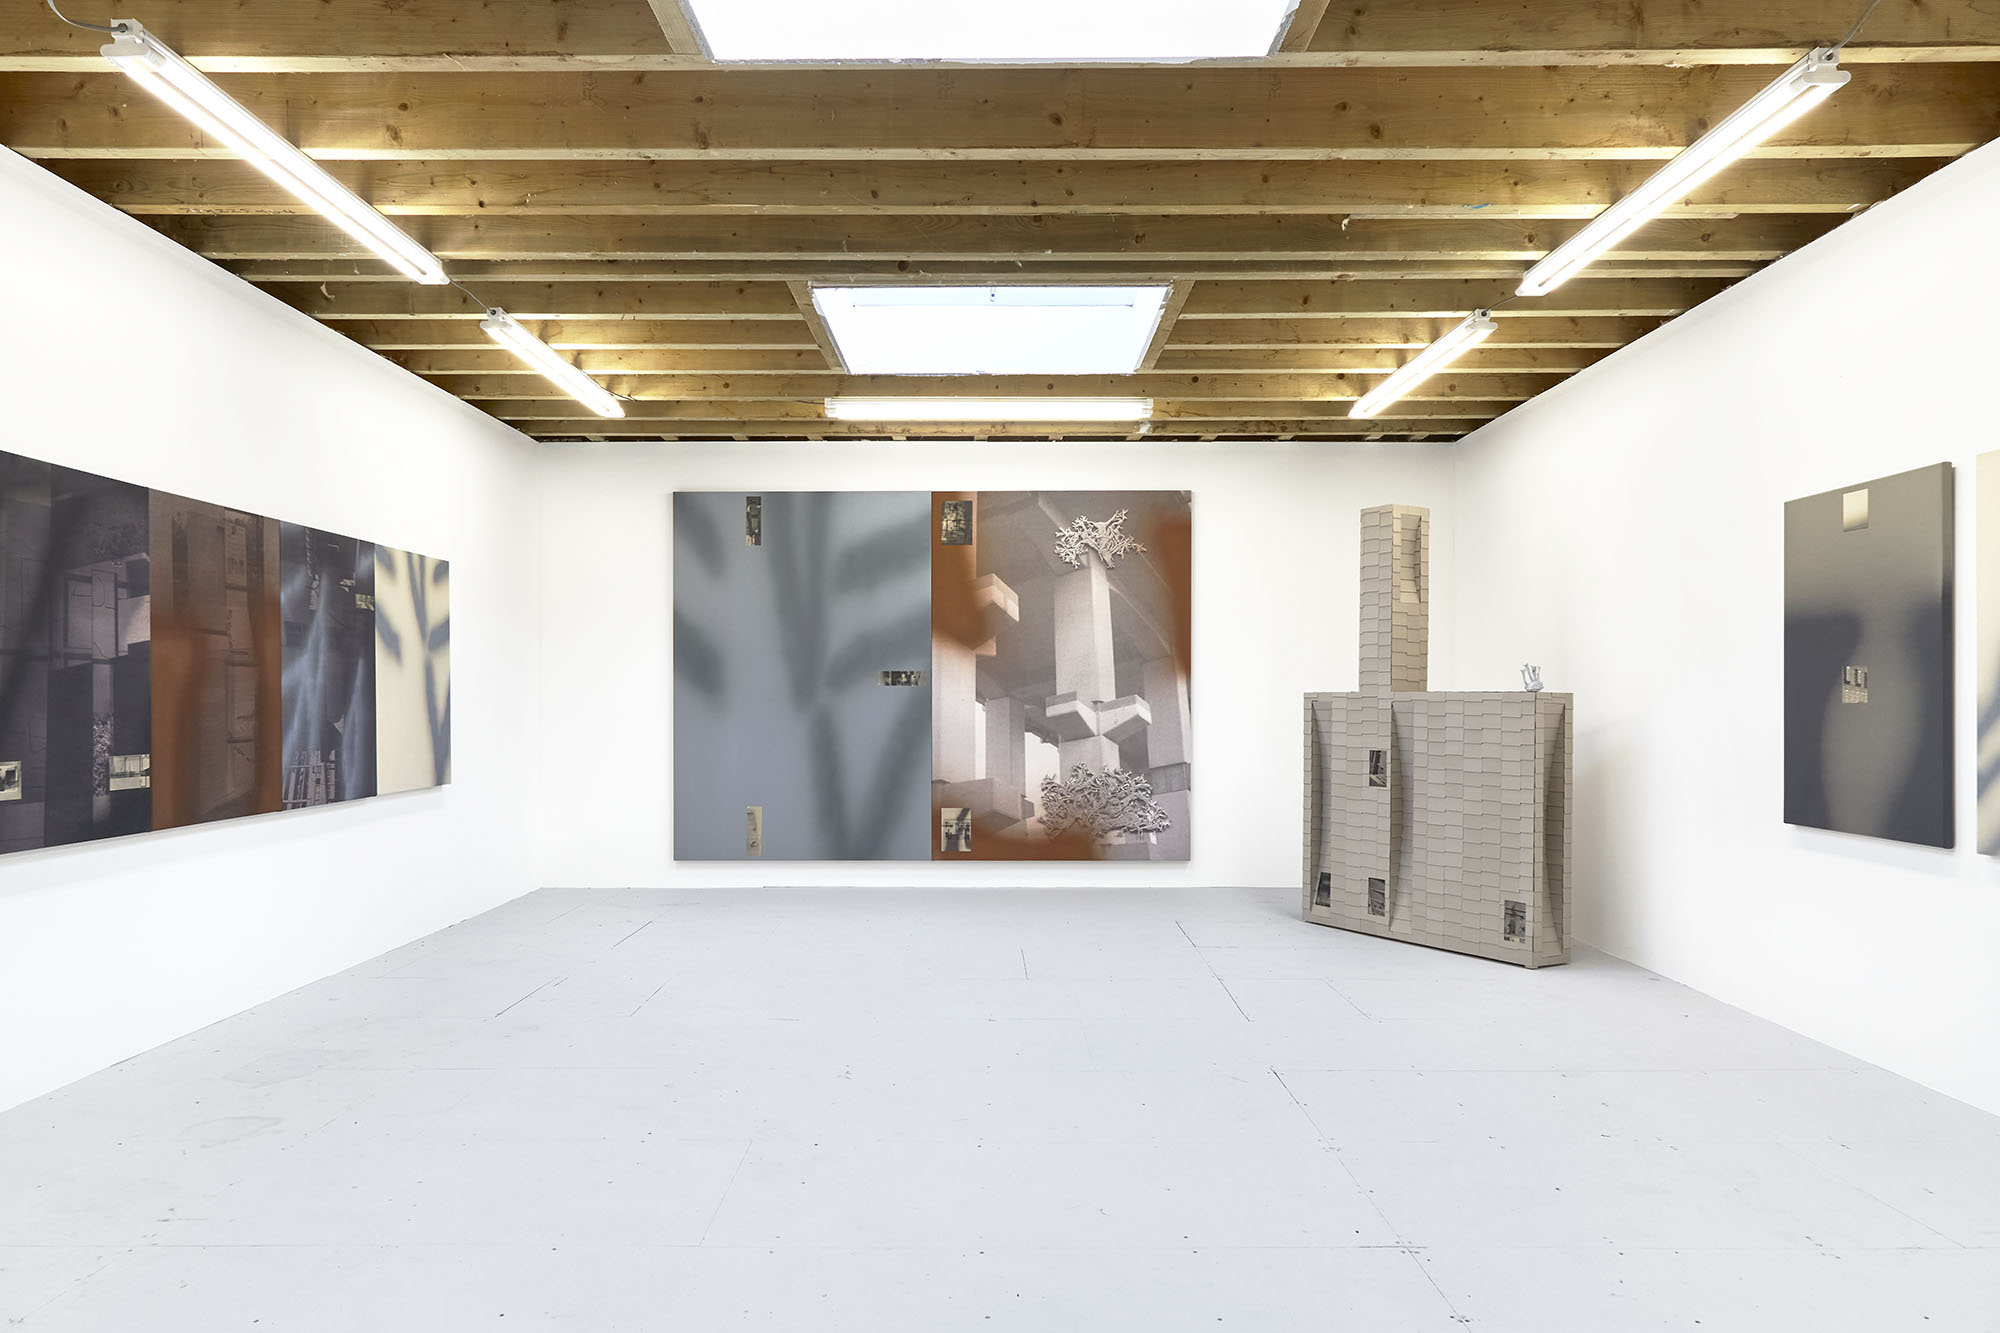 Installation View, Florist Mews, 2021, images courtesy of the artist and Castor Gallery